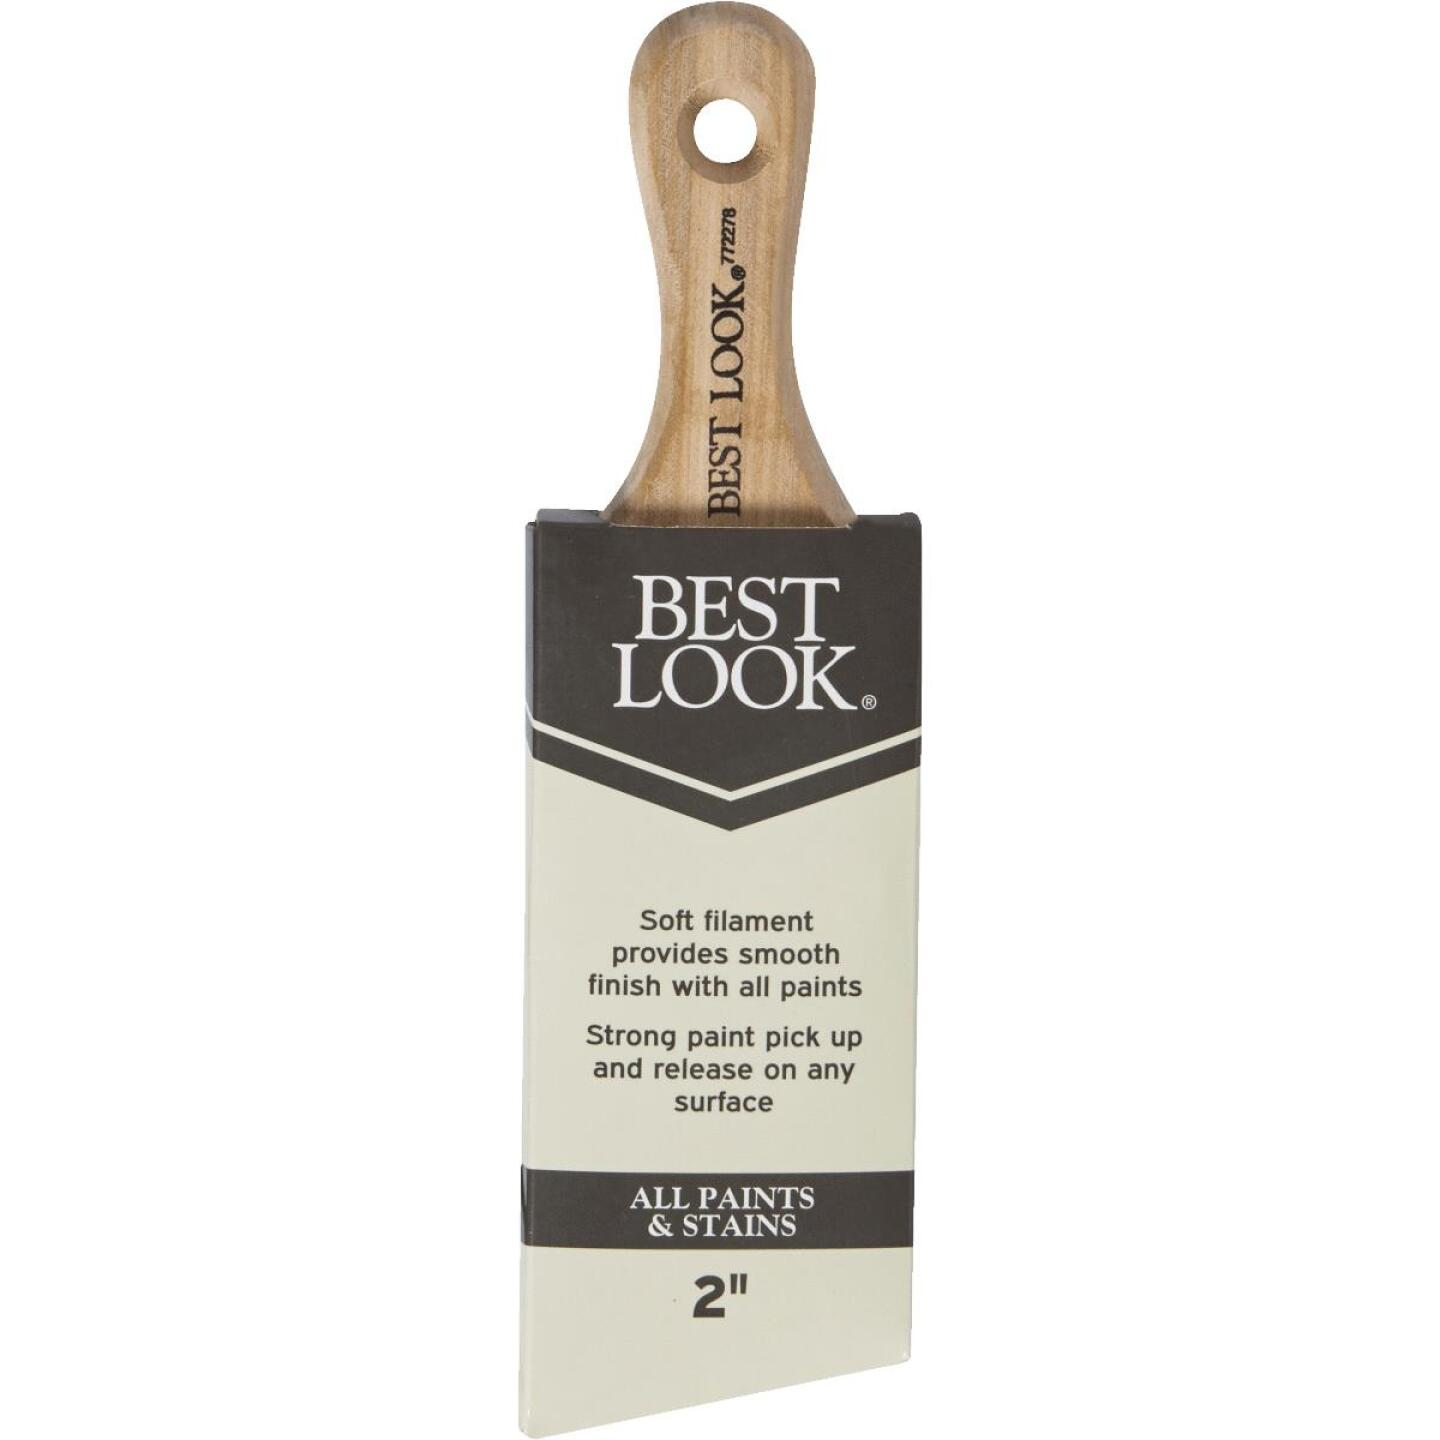 Best Look 2 In. Angle Sash Short Handle Paint Brush Image 3